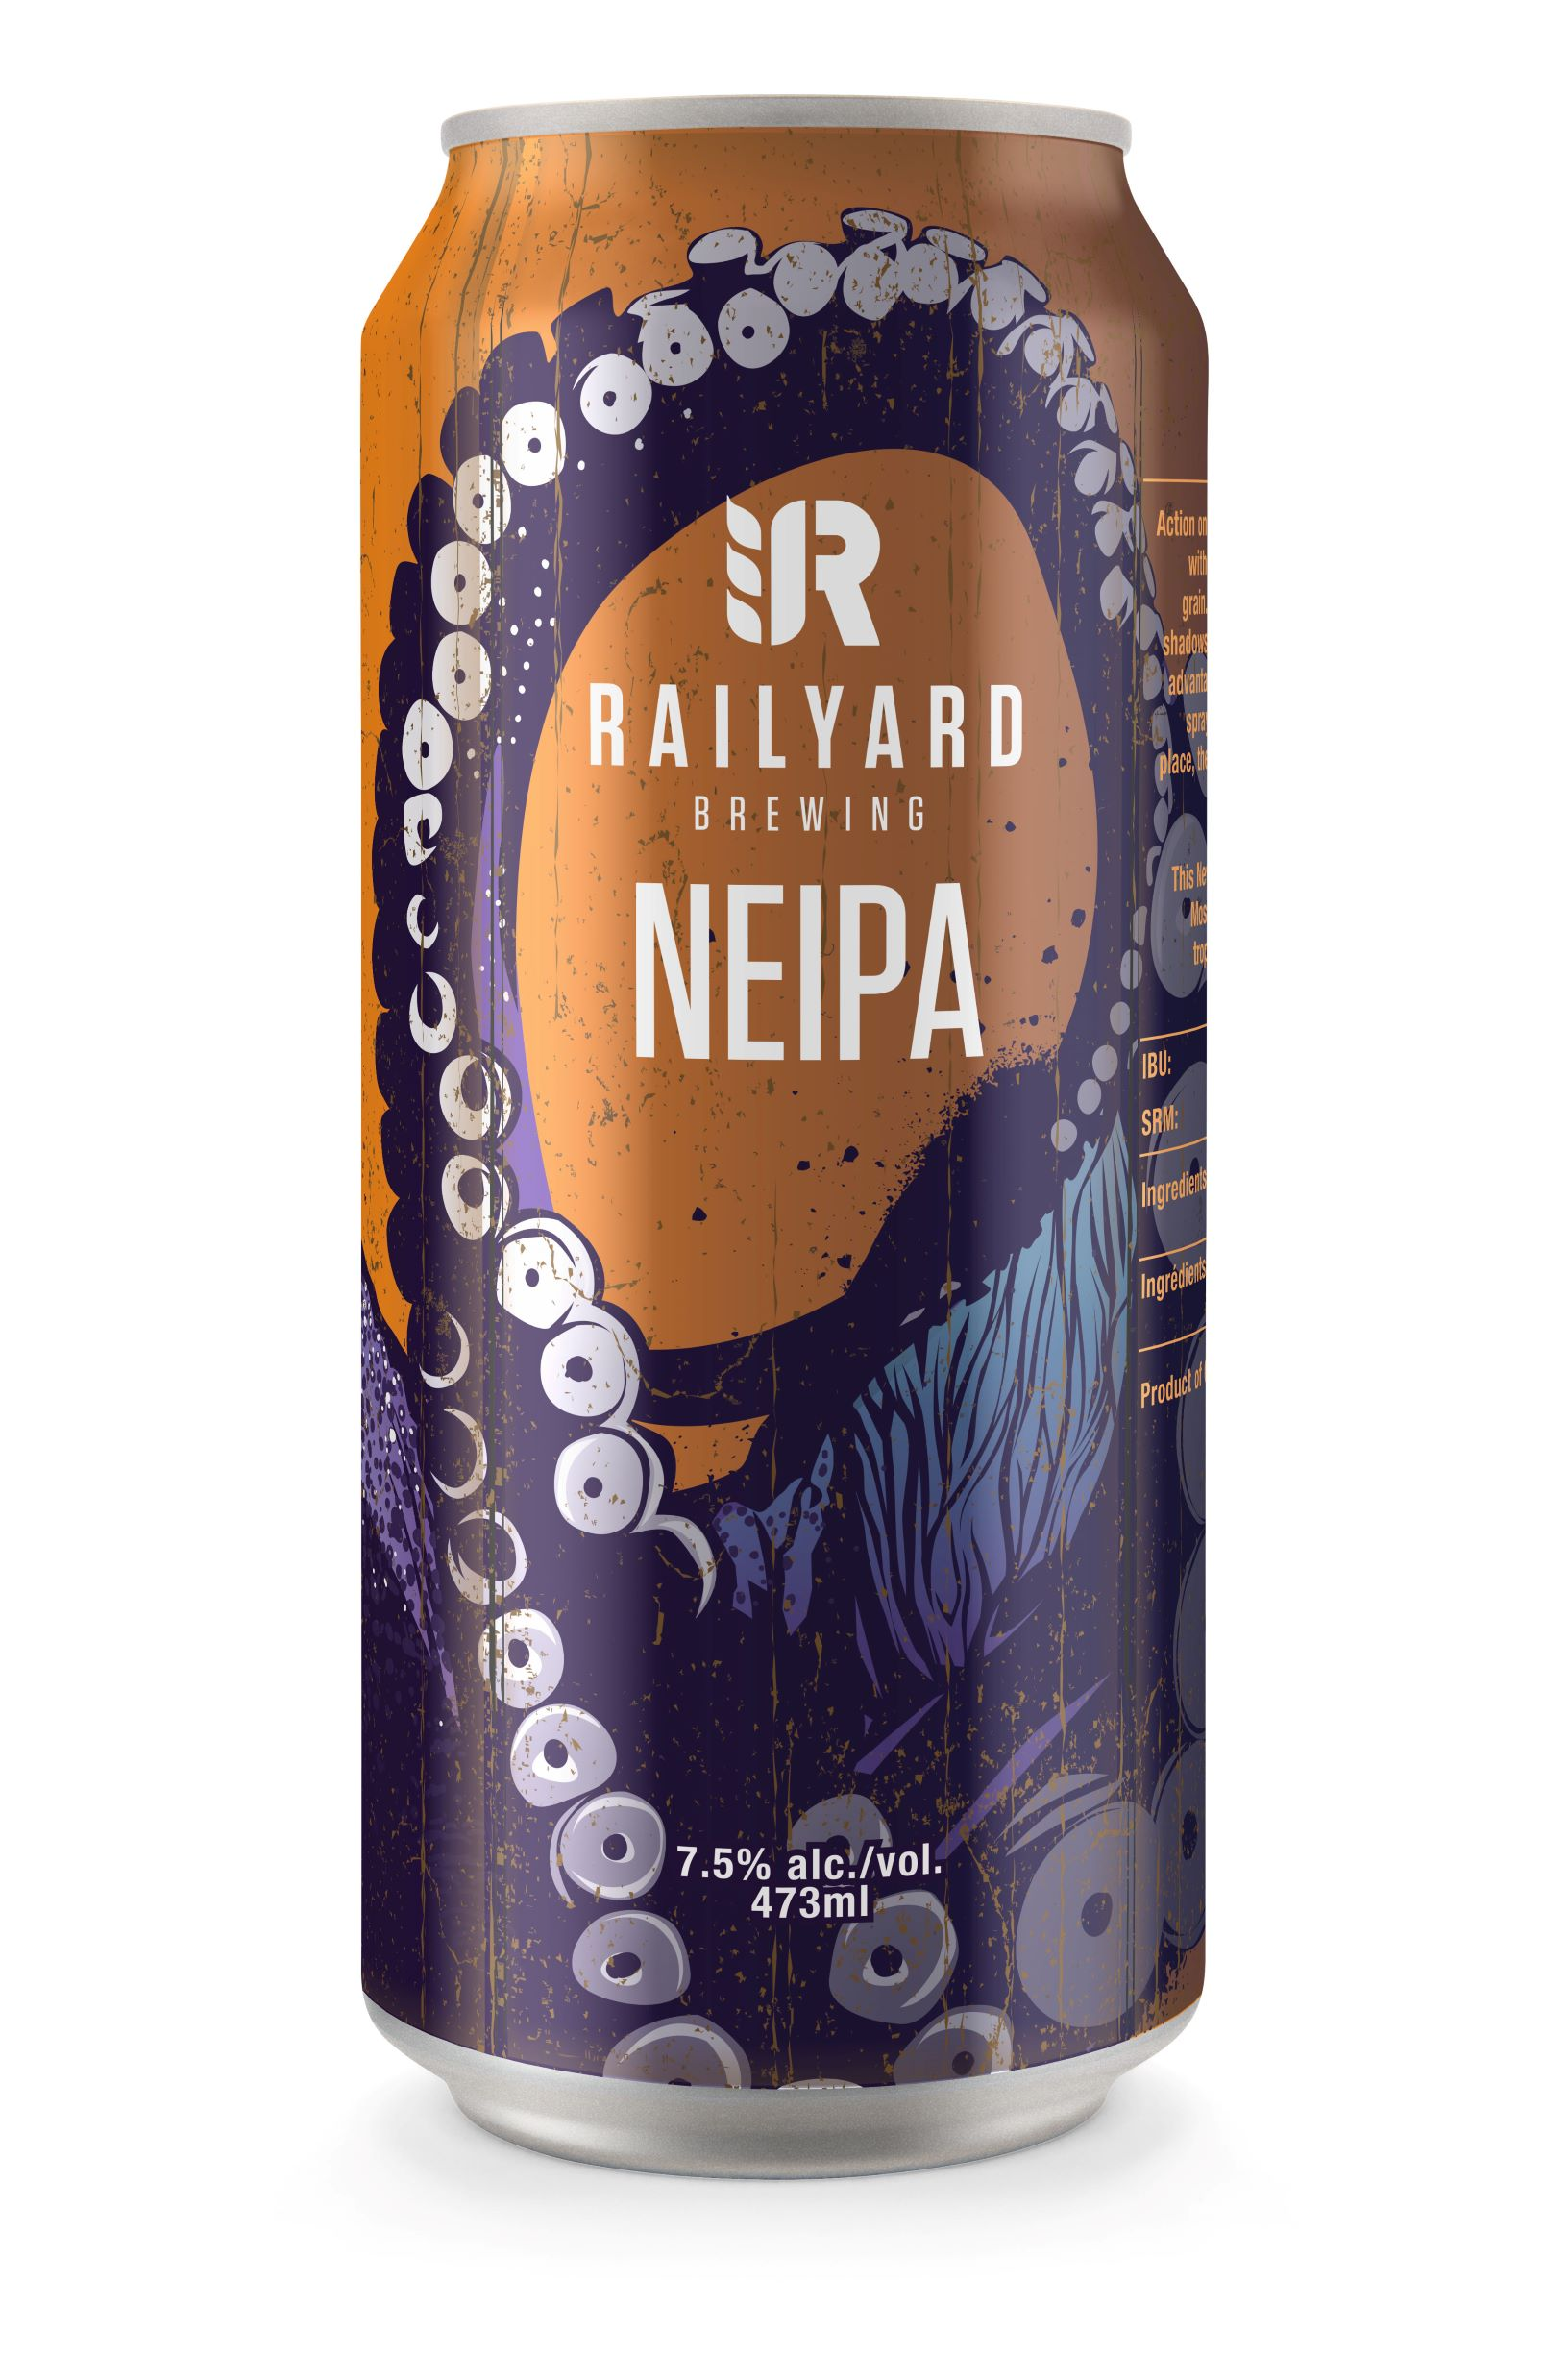 RAILYARD NEIPA   On its first tropical stop in the Railyard line; this New England IPA brings carloads of pineapple and mango hop flavours with aromatics that'll be noticed as soon as it enters the station! Brewed for its juicy presentation and smooth hop finish, this is the perfect addition to your lazy summer day; or escape from the winter doldrums.